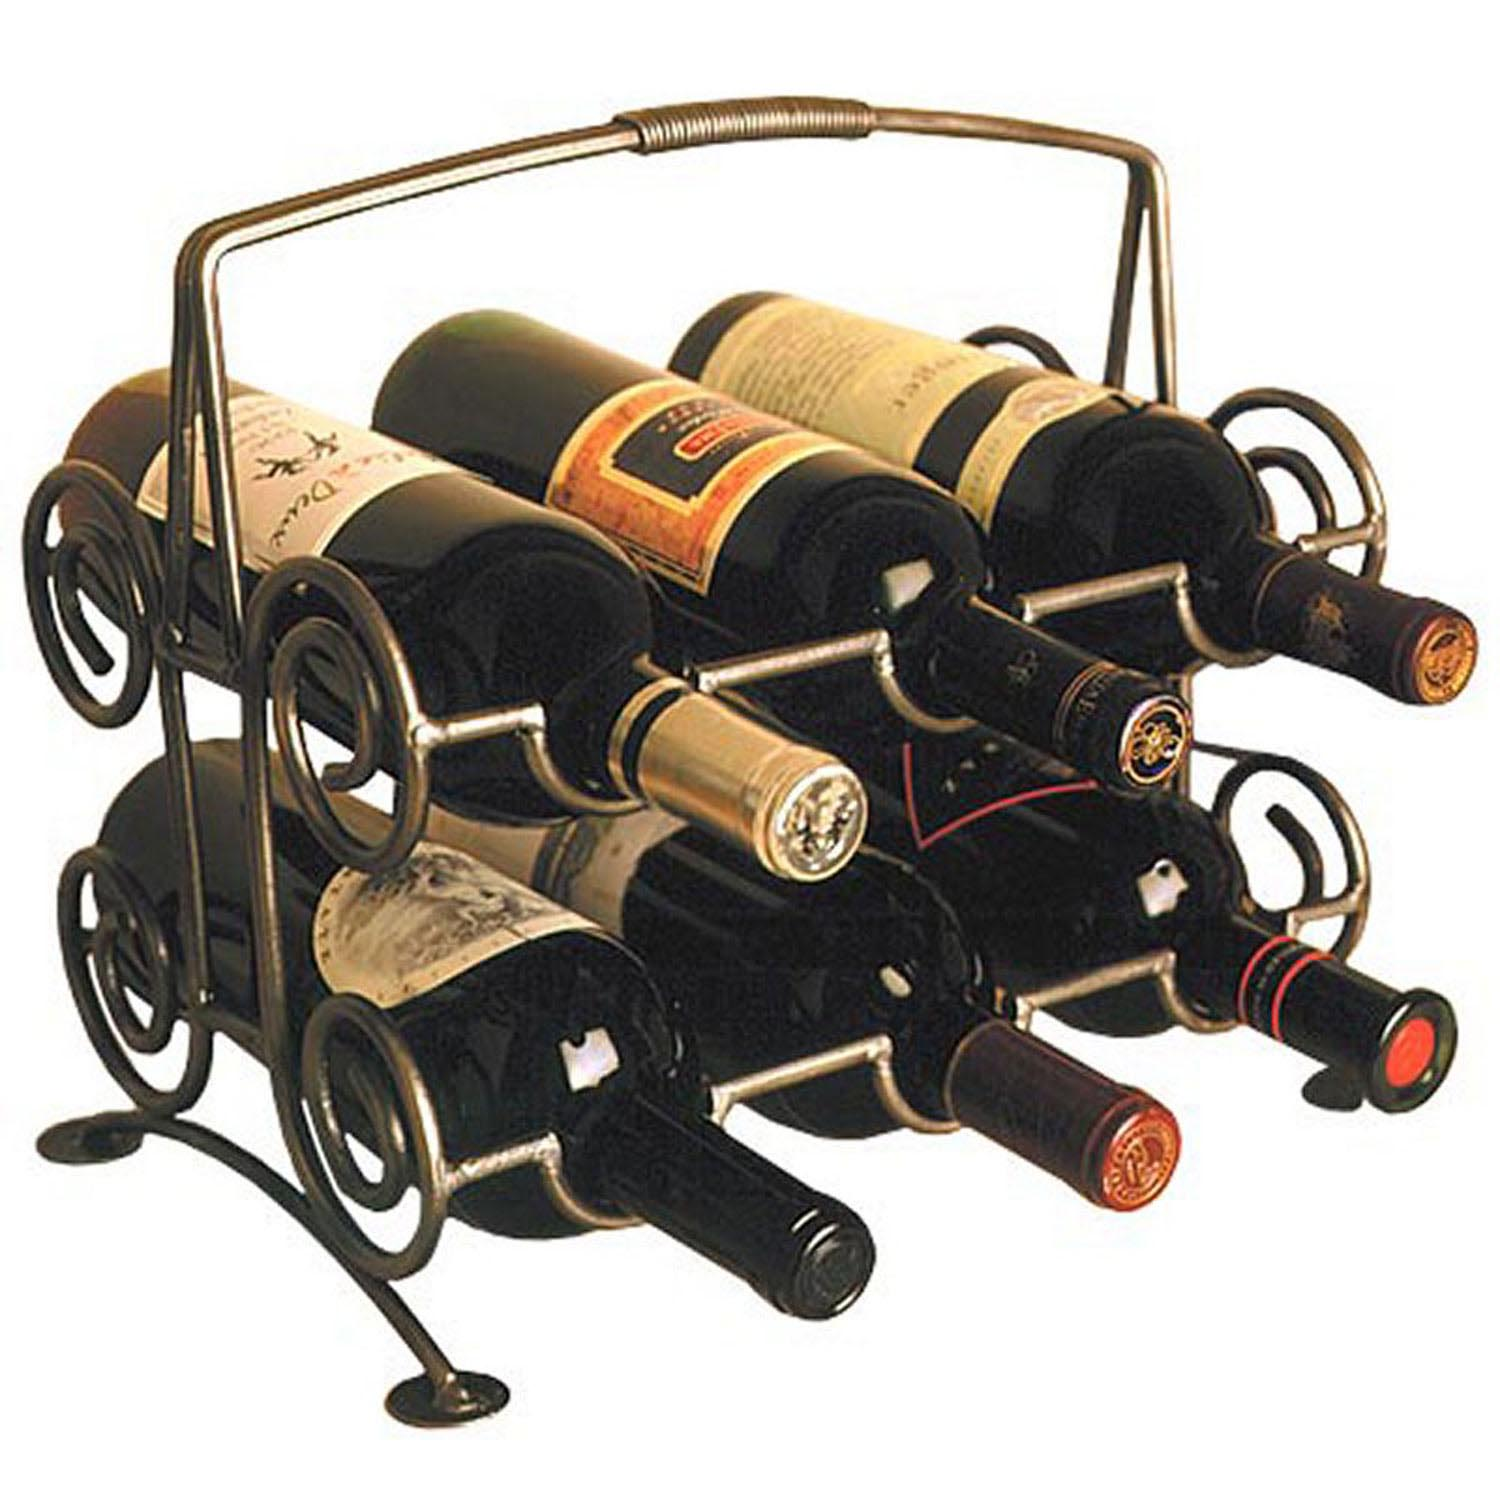 Six Bottle Cellar Master's Wine Rack | American Country on kitchen cabinets with wine racks, kitchen island with wine rack, kitchen cabinet coffee table, kitchen bar with wine rack,